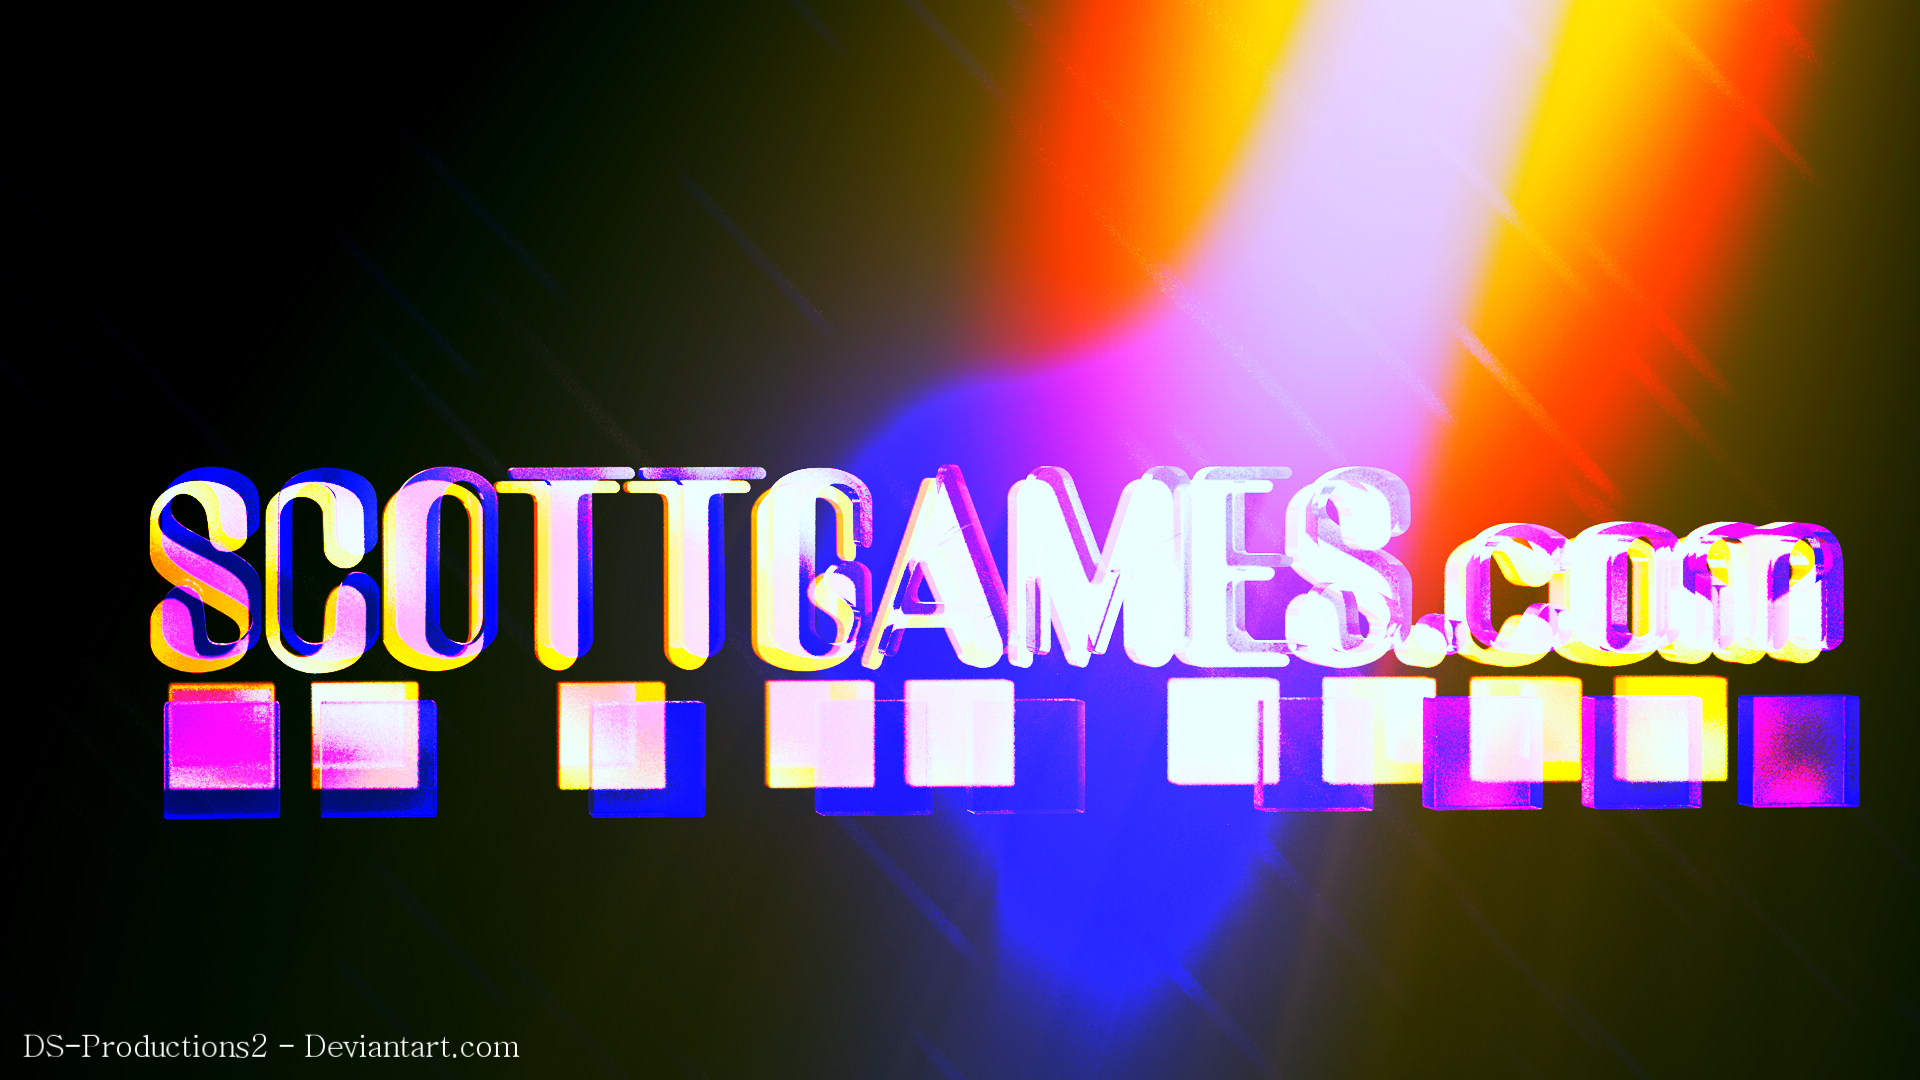 SCOTTGAMES.com logo | Remodeled by DS-Productions2